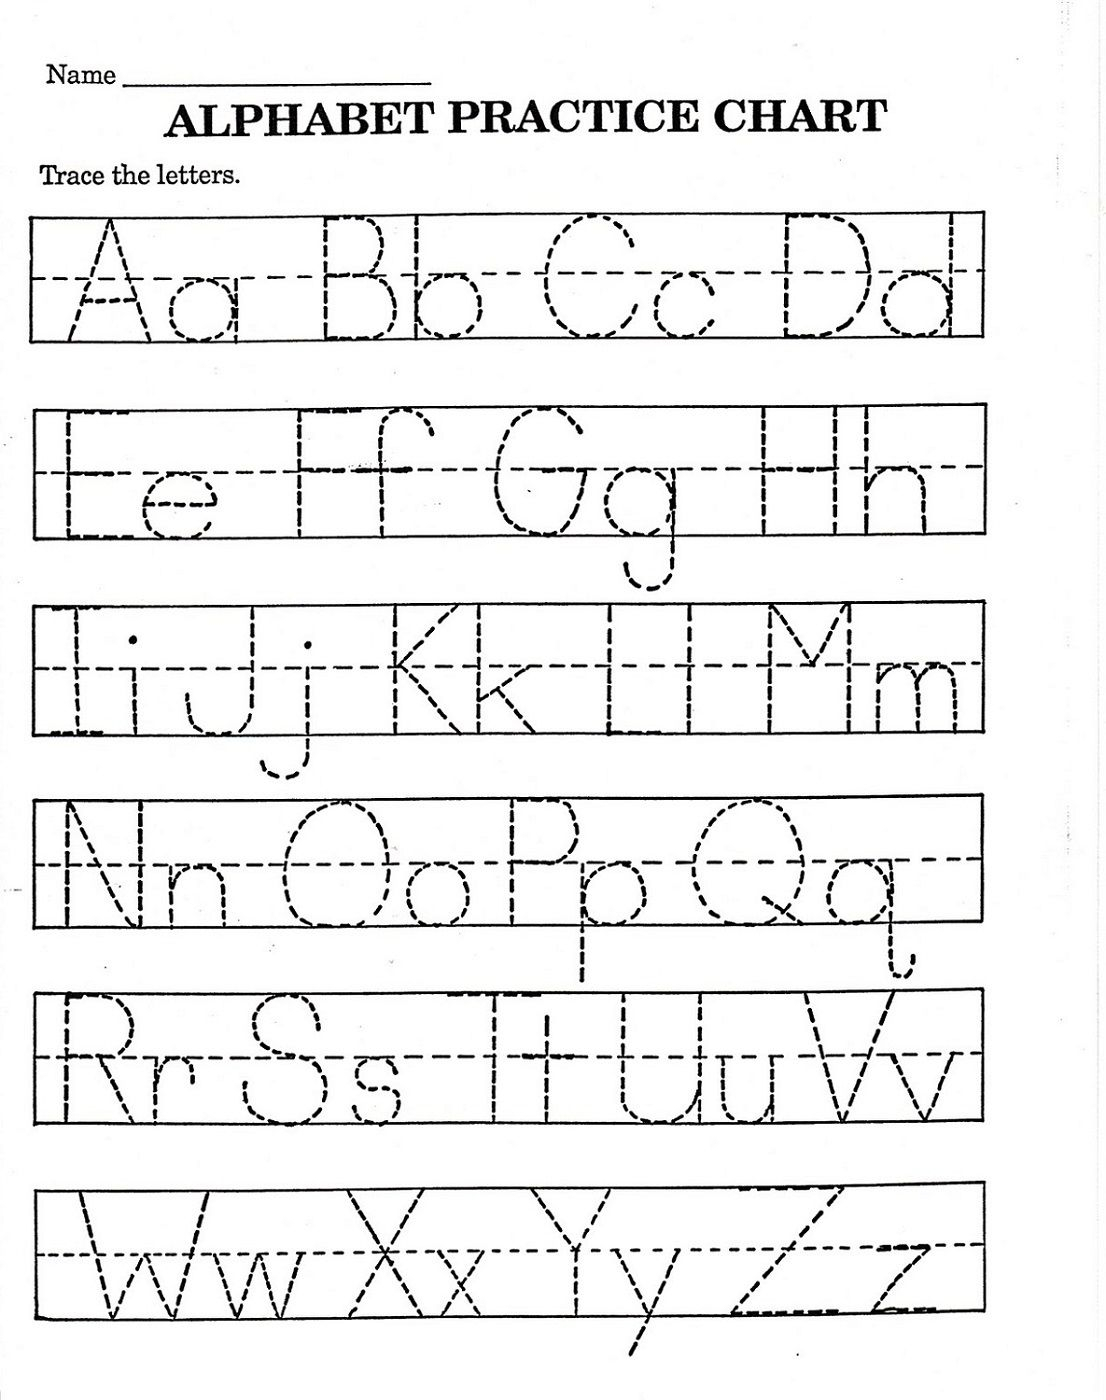 Trace Letter Worksheets Free | Alphabet Tracing Worksheets inside Printable Tracing Letters Of The Alphabet